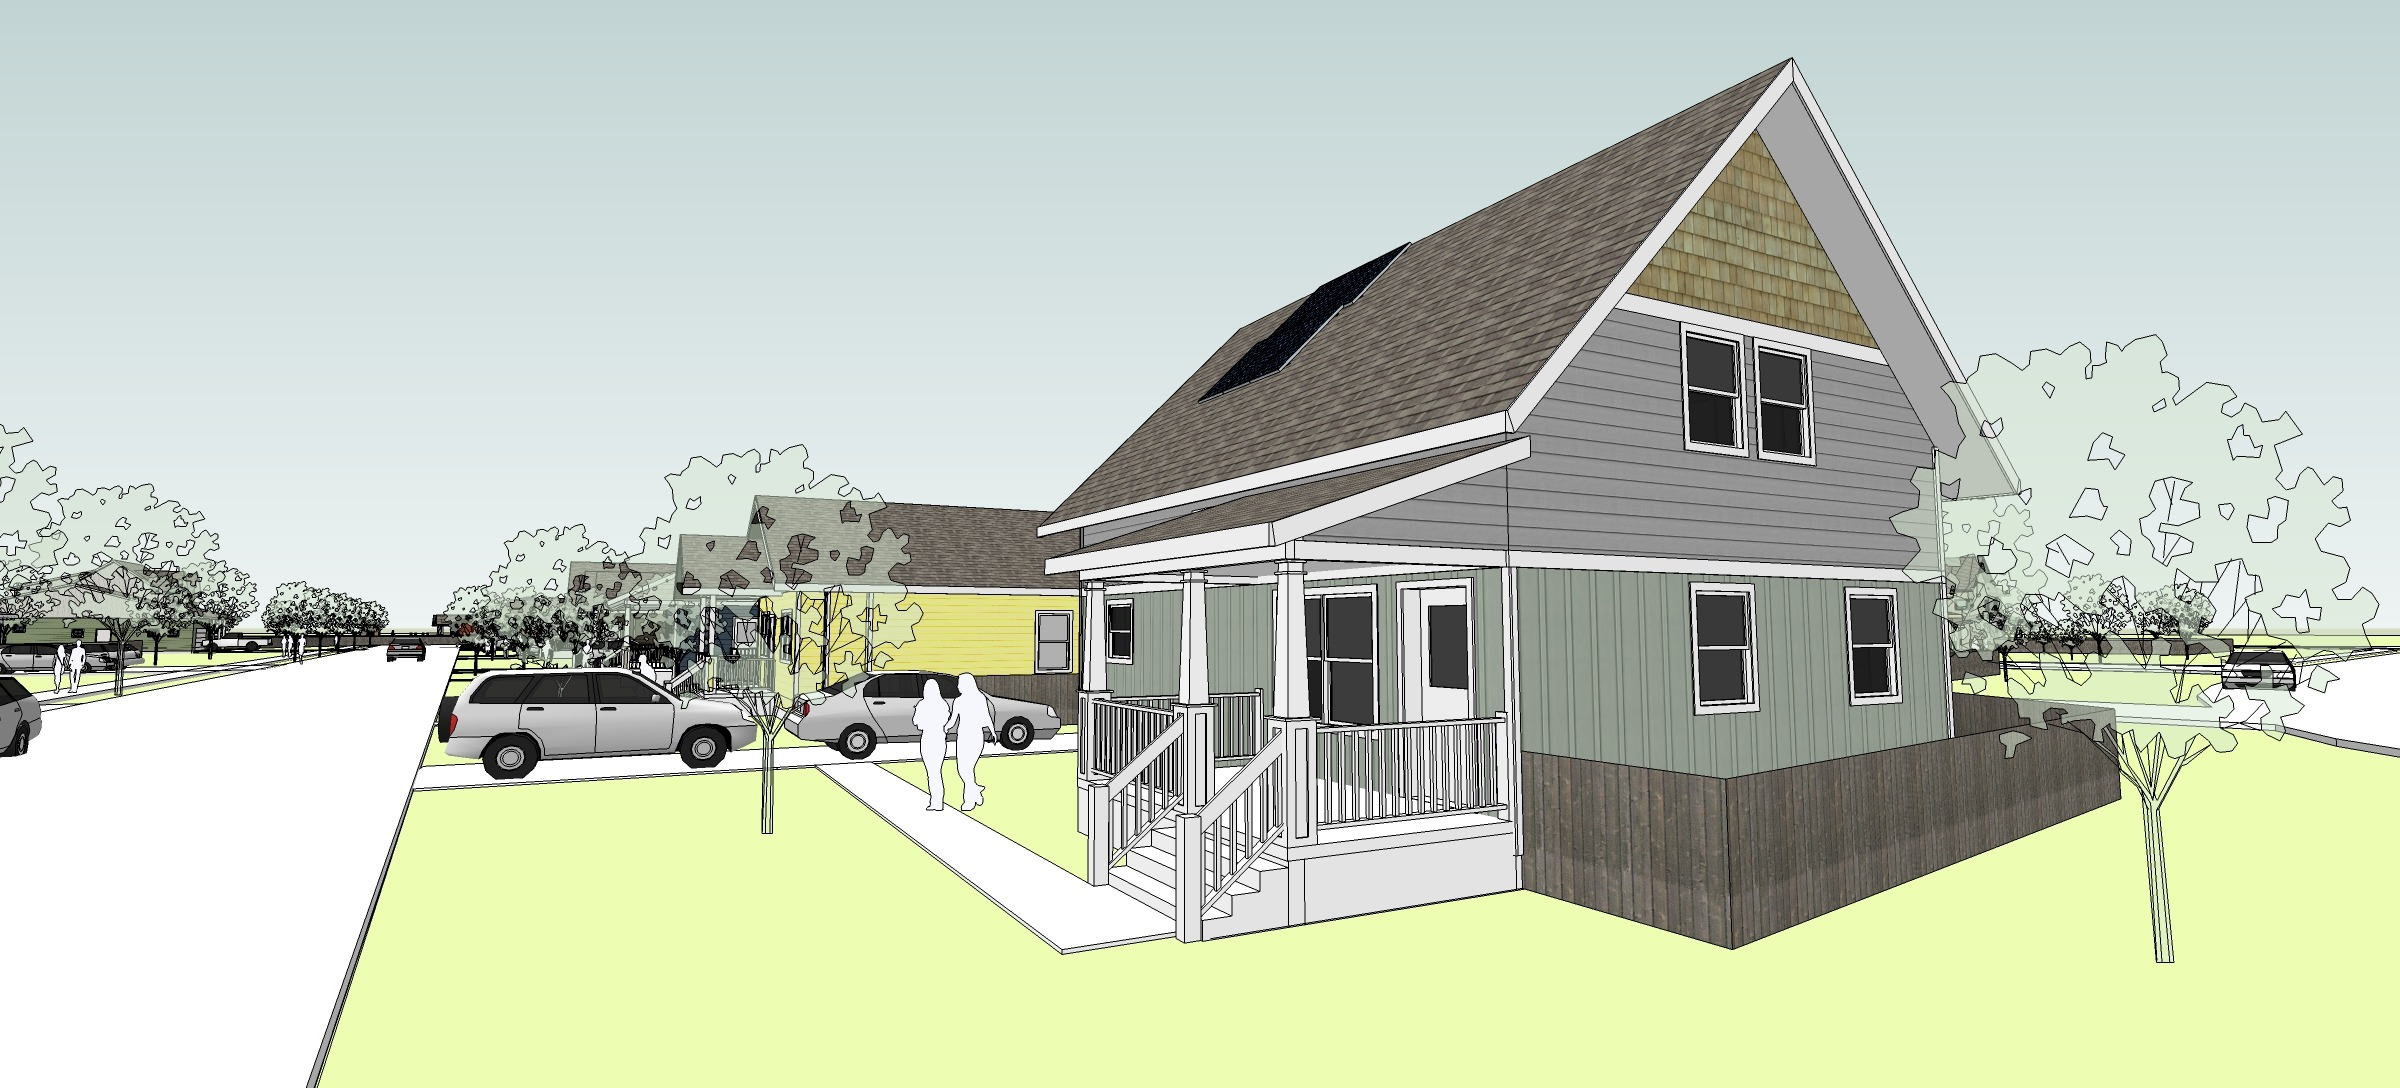 Super insulated home design plans.